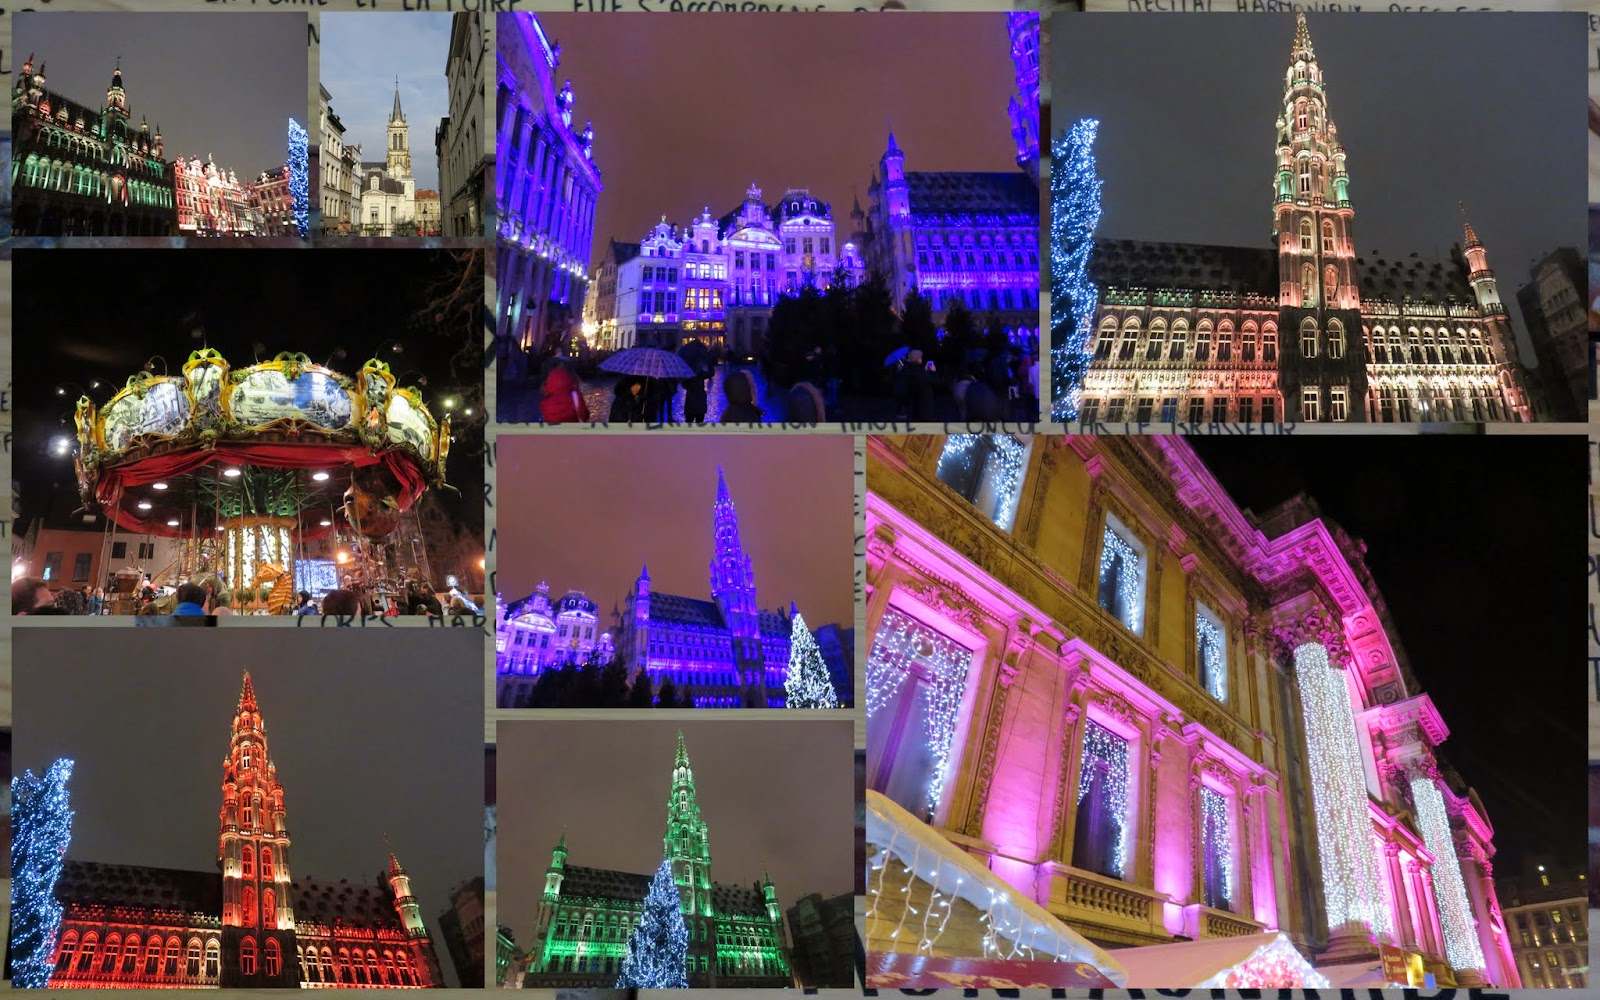 Christmas Light Show on the Grote Markt in Brussels